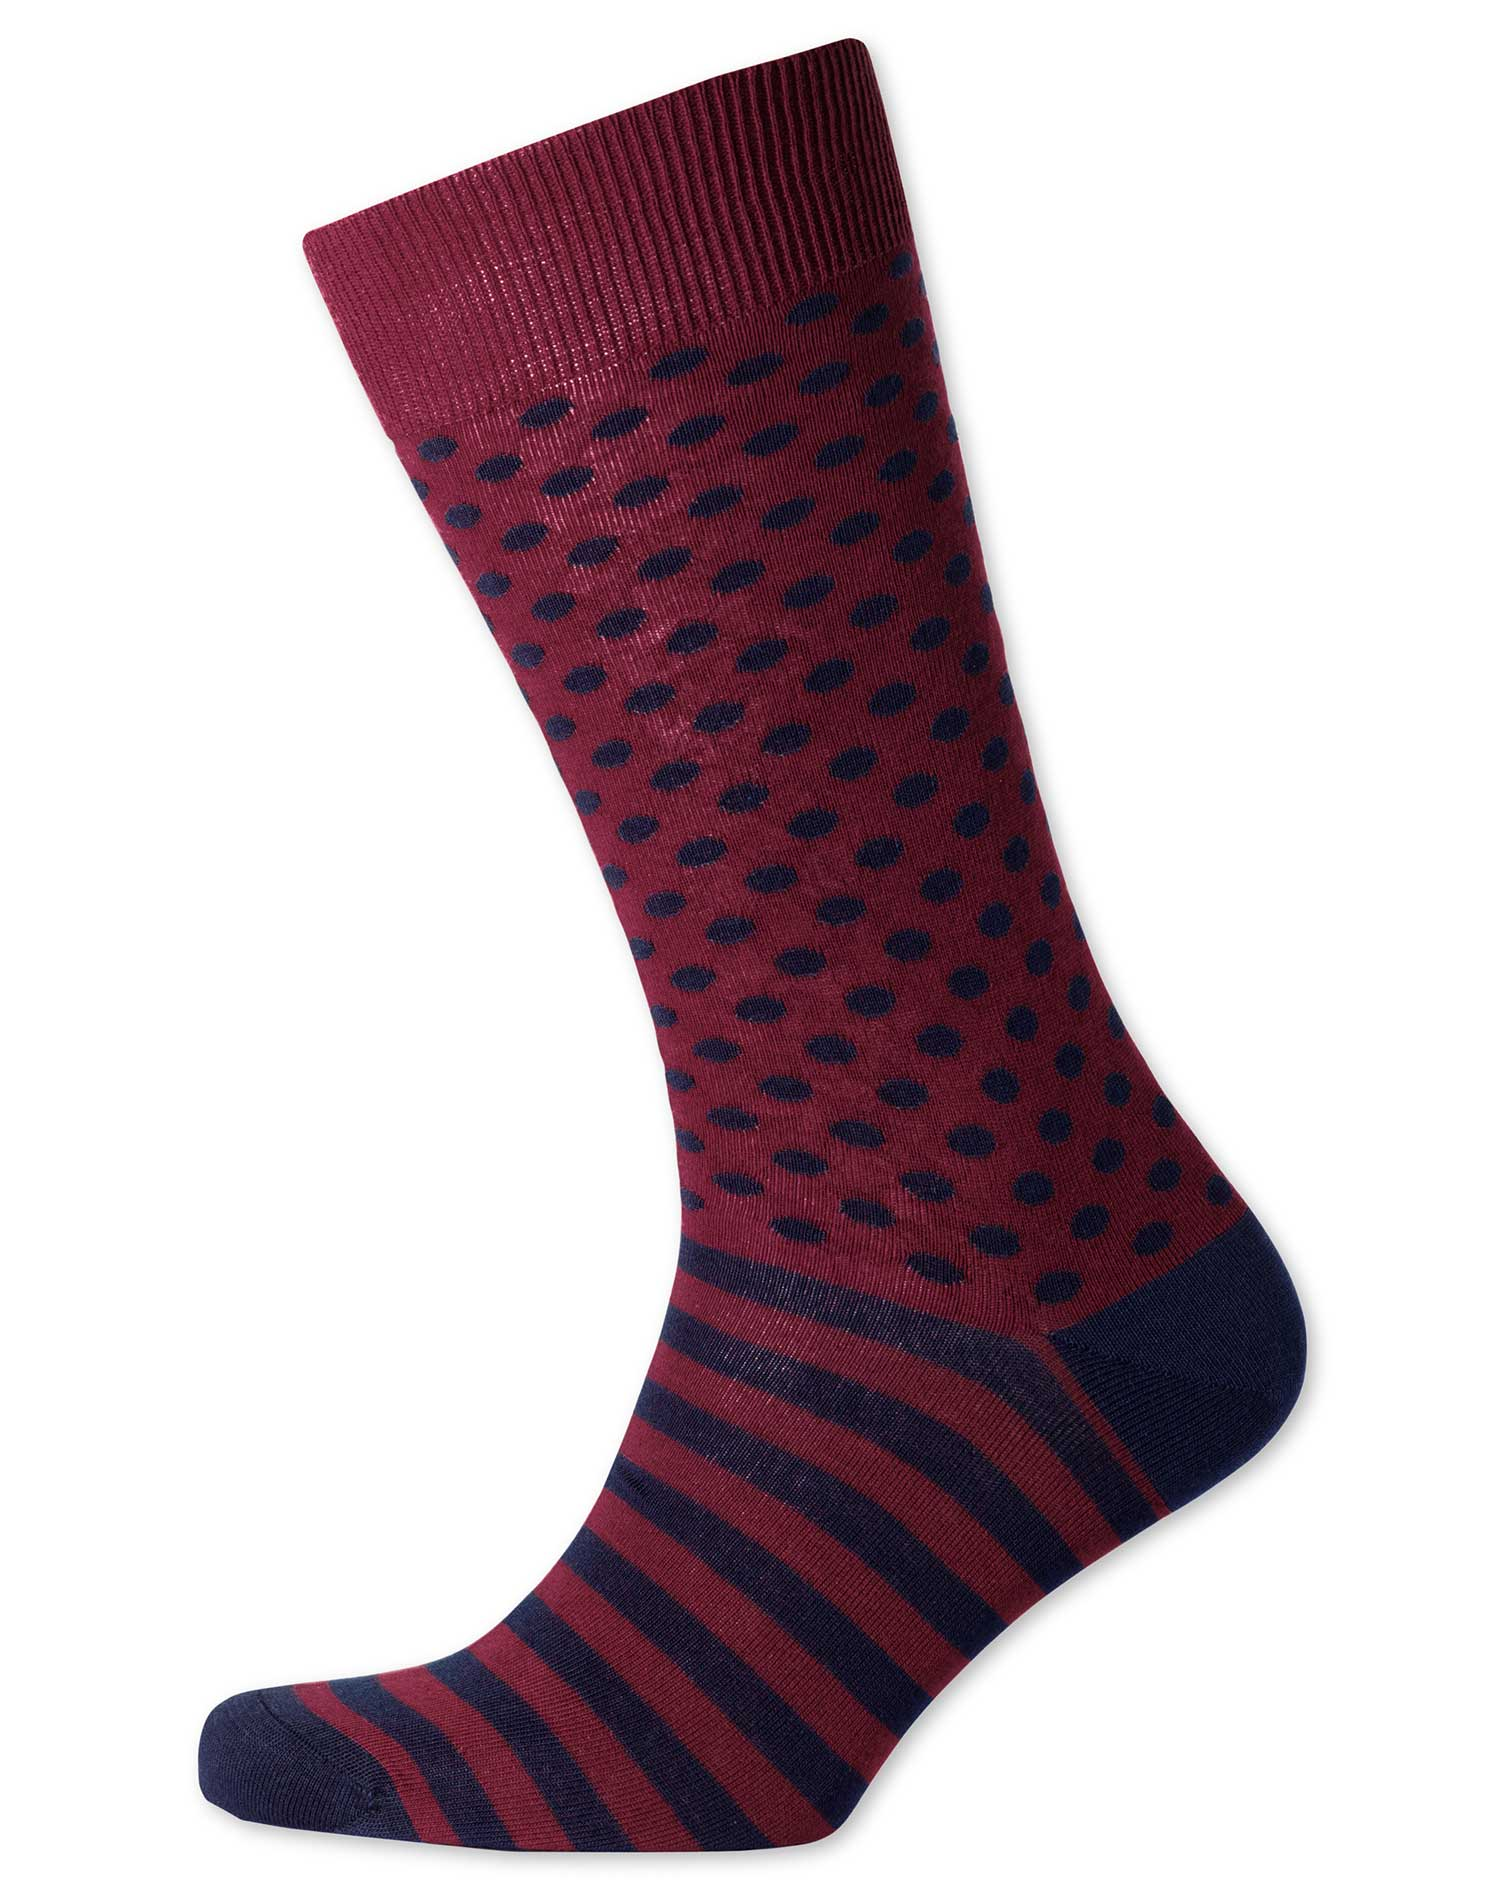 Burgundy and Navy Spot and Stripe Socks Size Medium by Charles Tyrwhitt